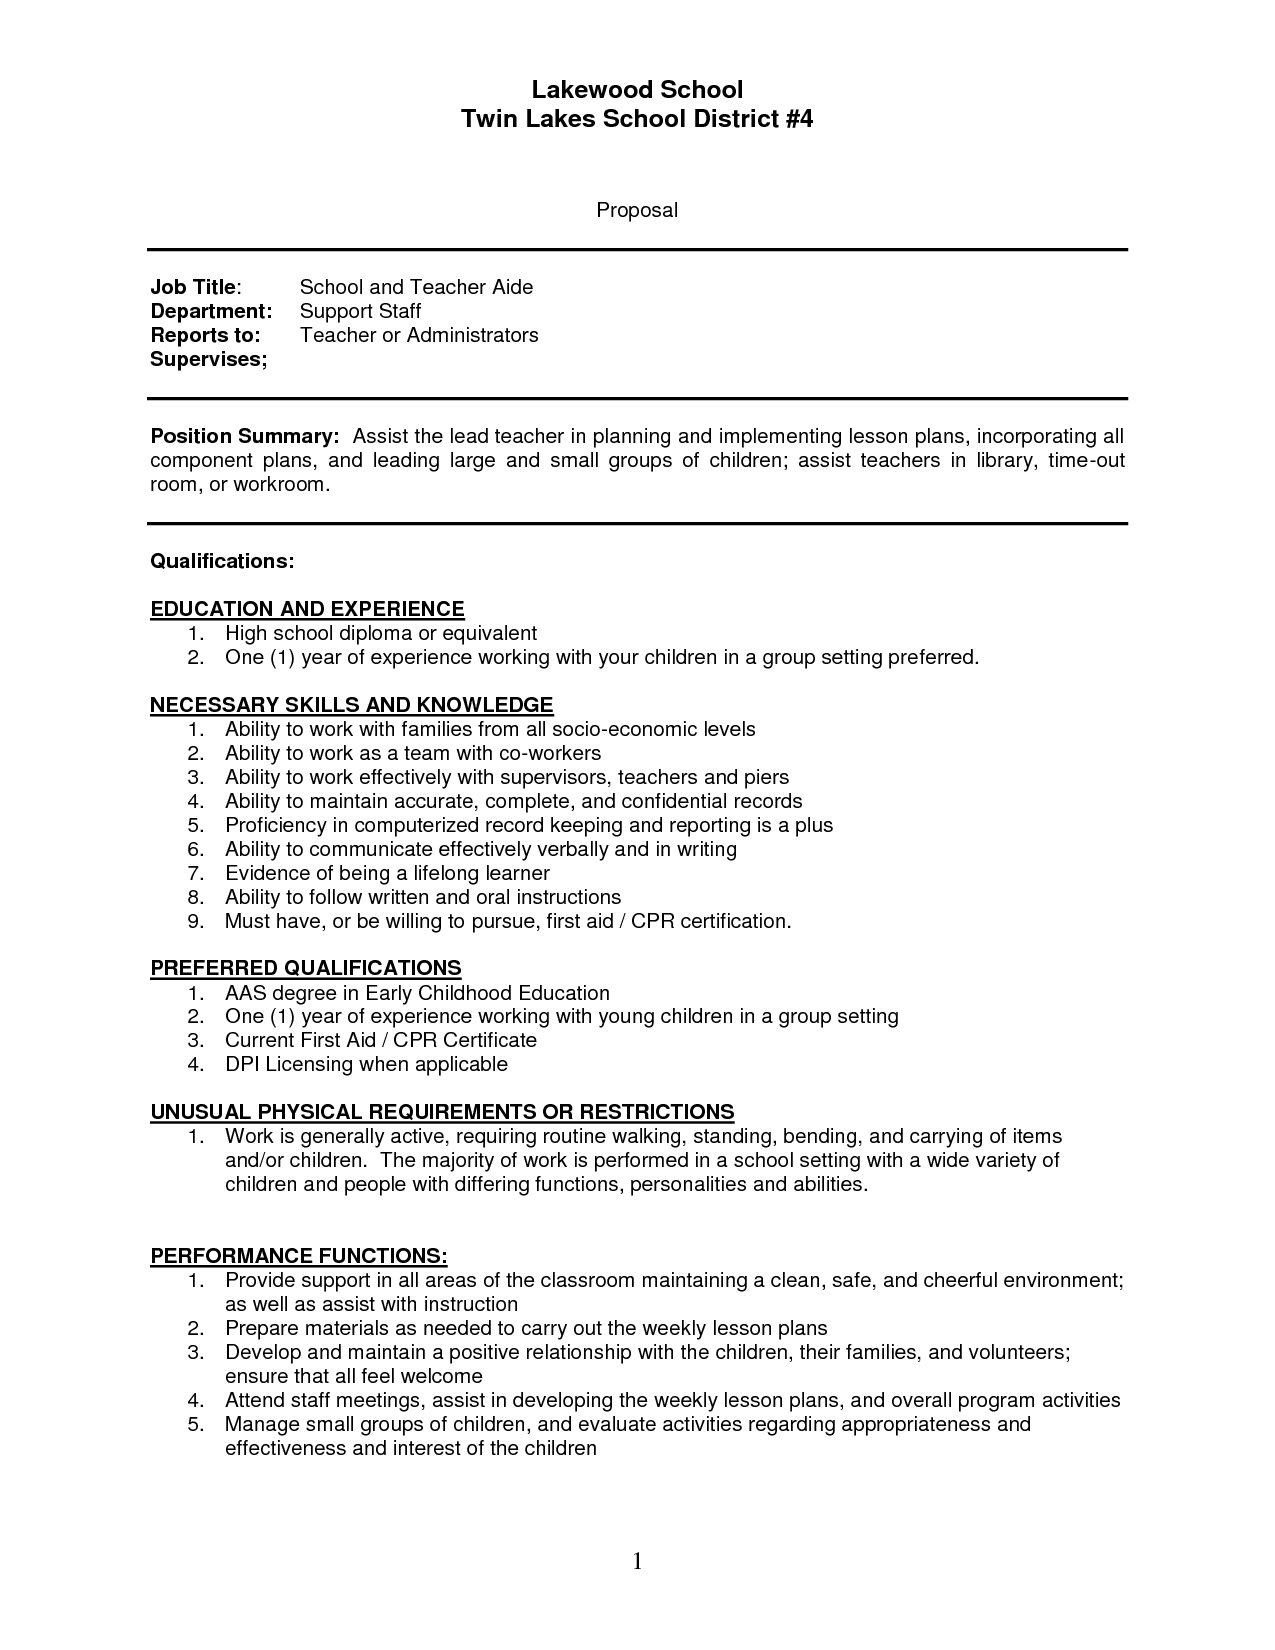 sample resume for teachers assistant